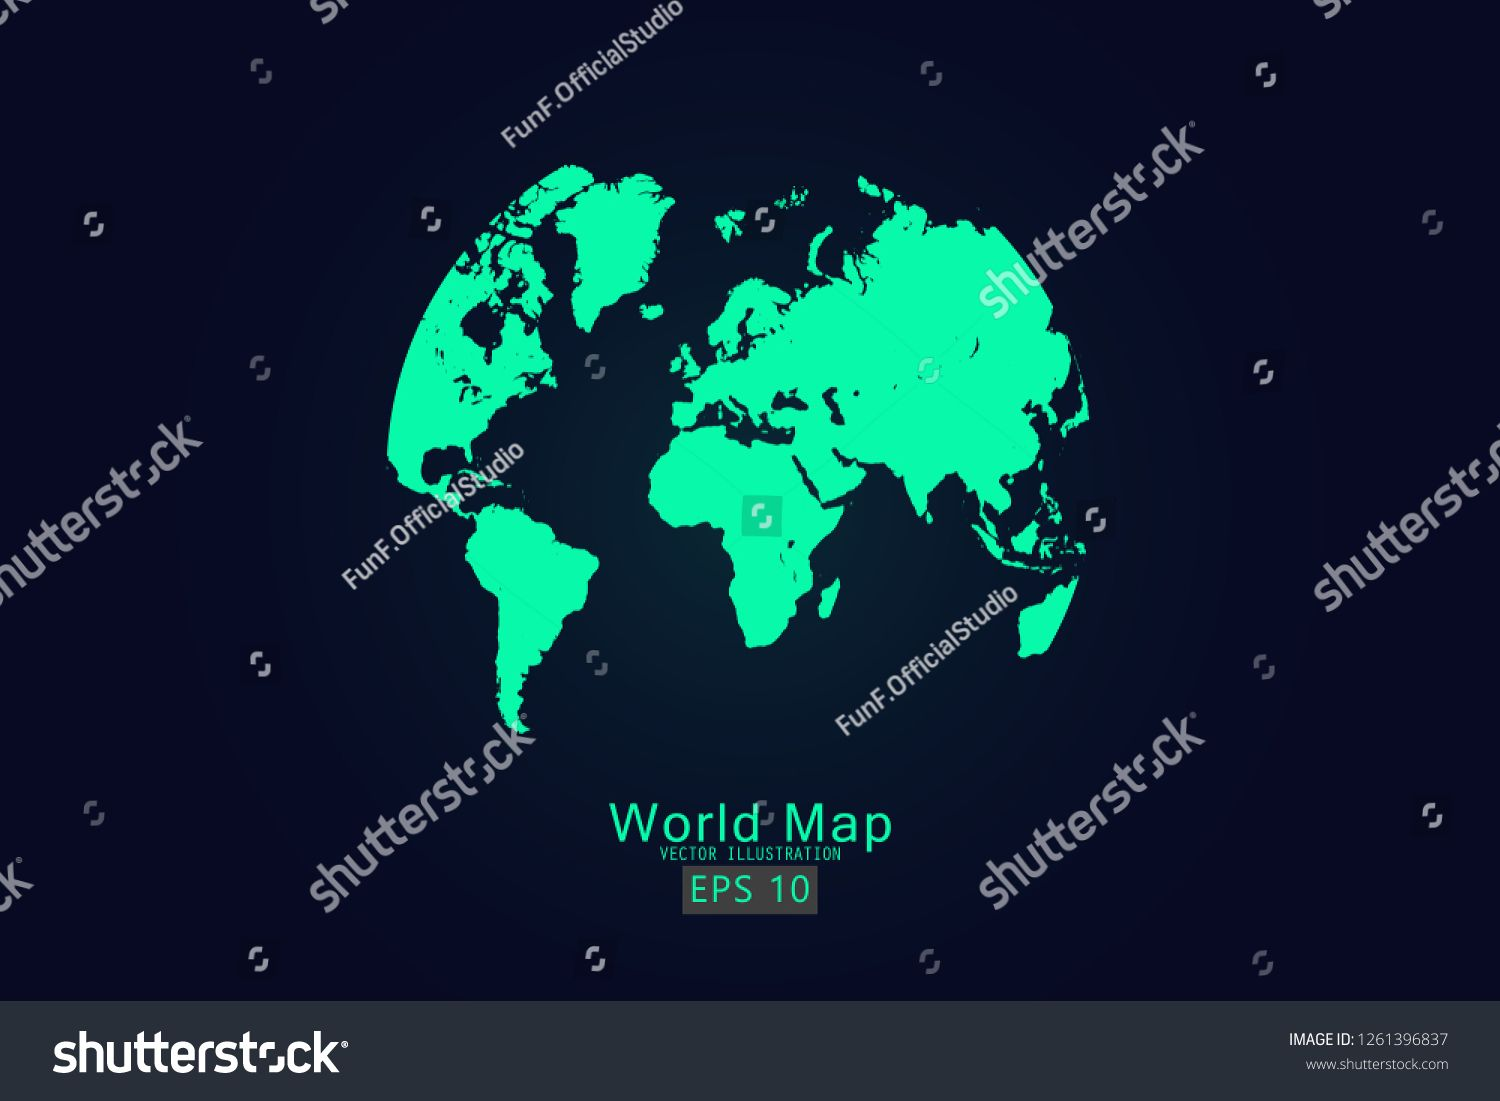 blue world map vector, simple world map vector, black white world map vector, detailed world map vector, on simplified world map vector